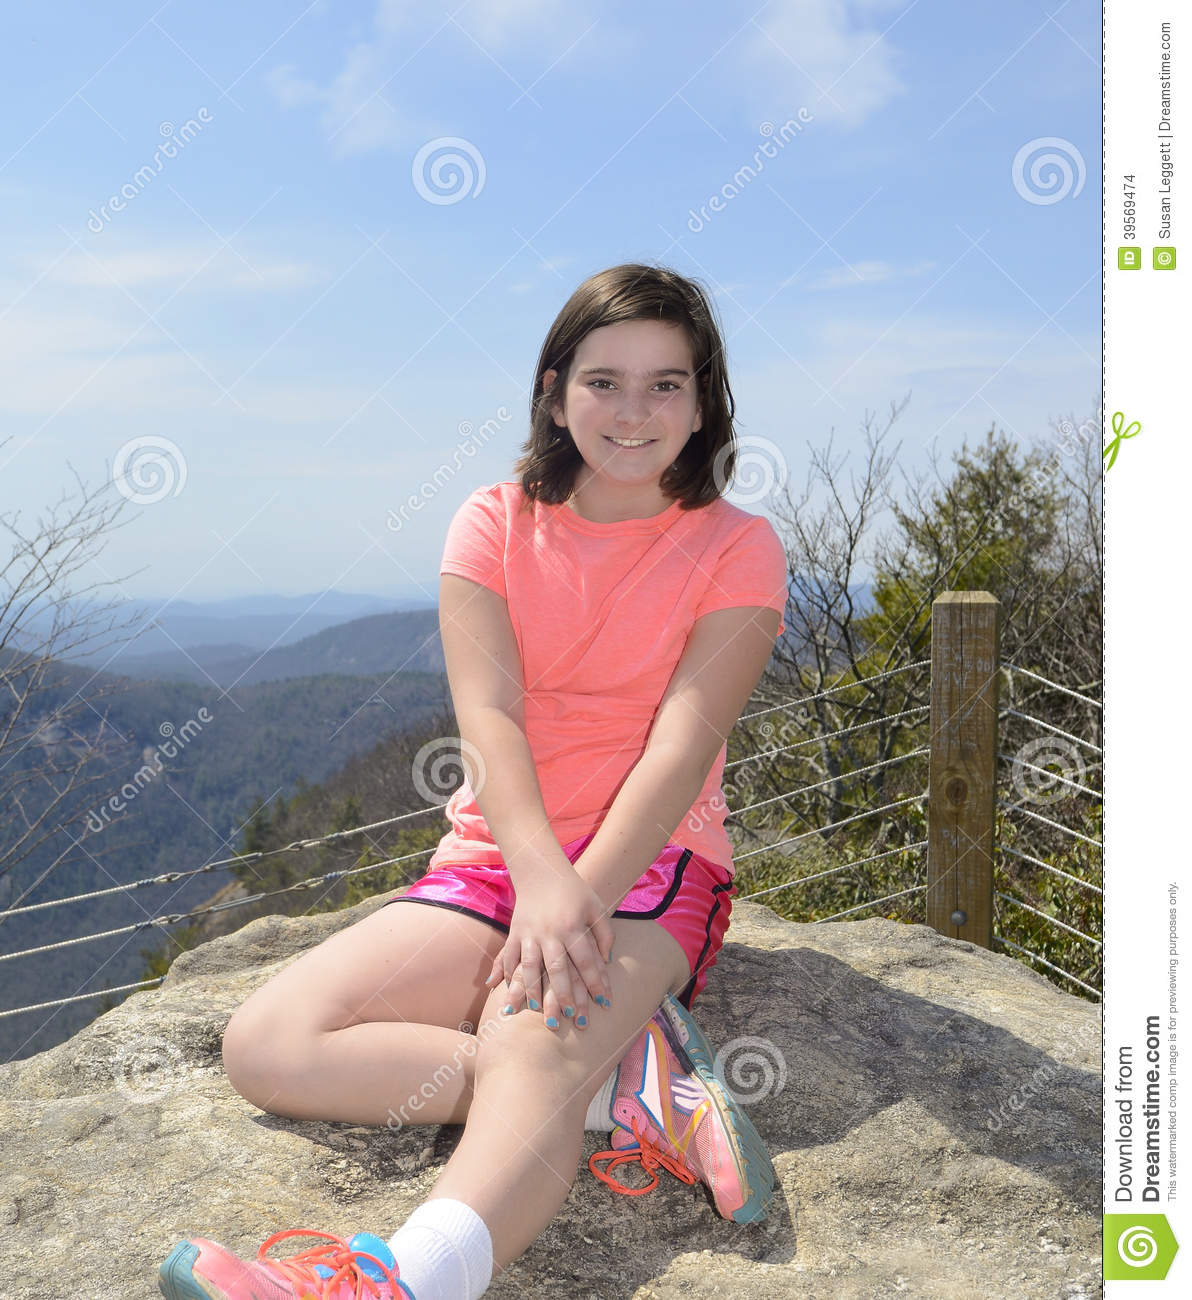 young girl resting on a rock overlook along a hiking trail.